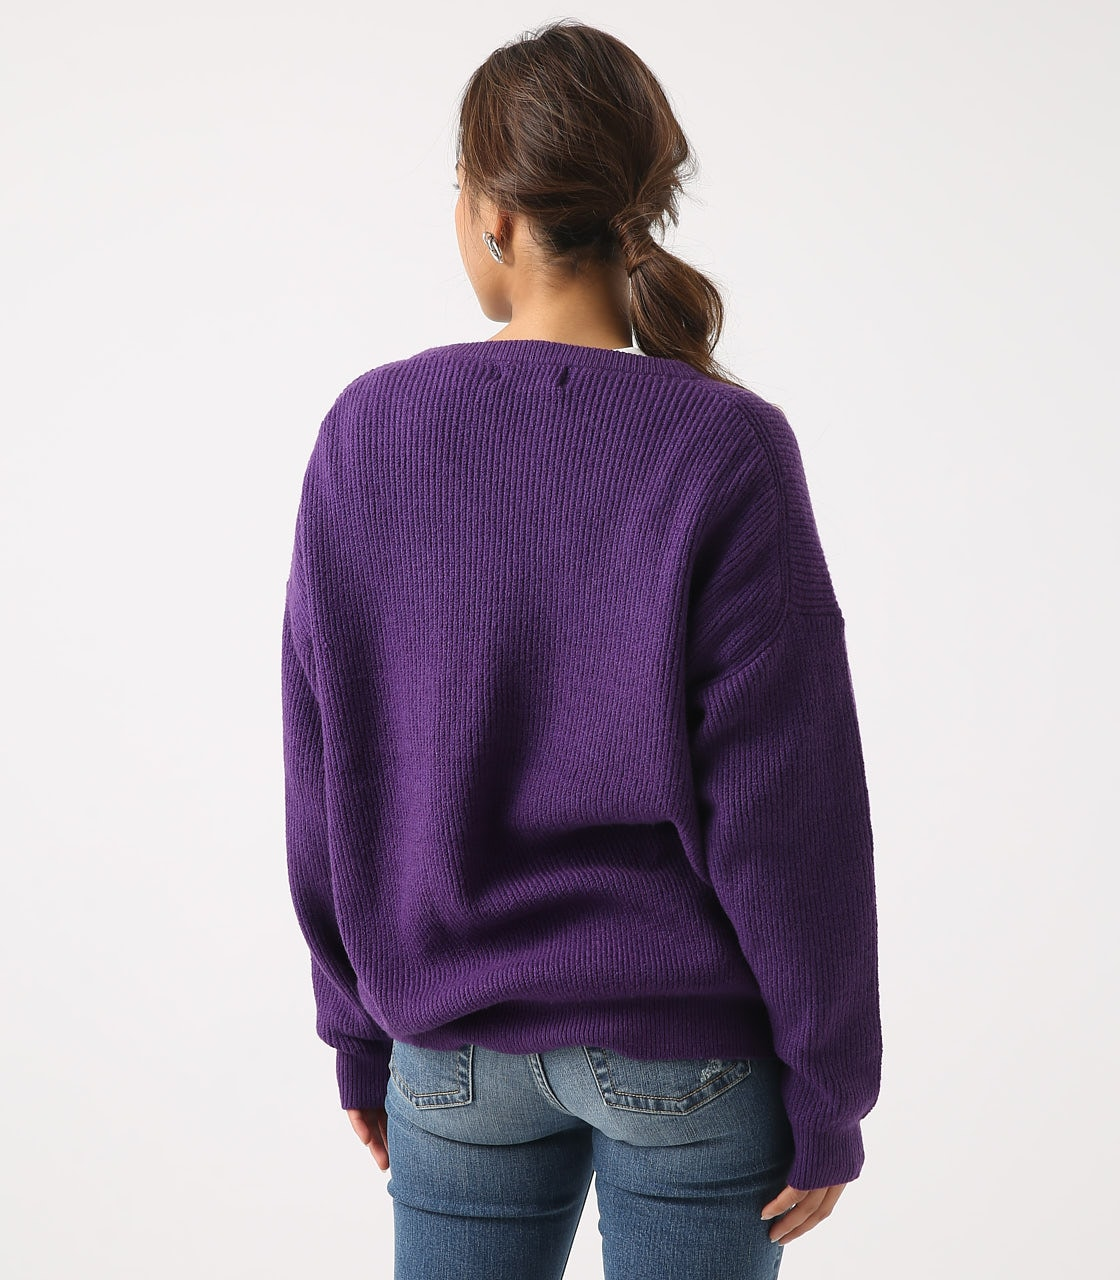 【AZUL BY MOUSSY】V NECK LOOSE KNIT TOPS 詳細画像 PUR 7